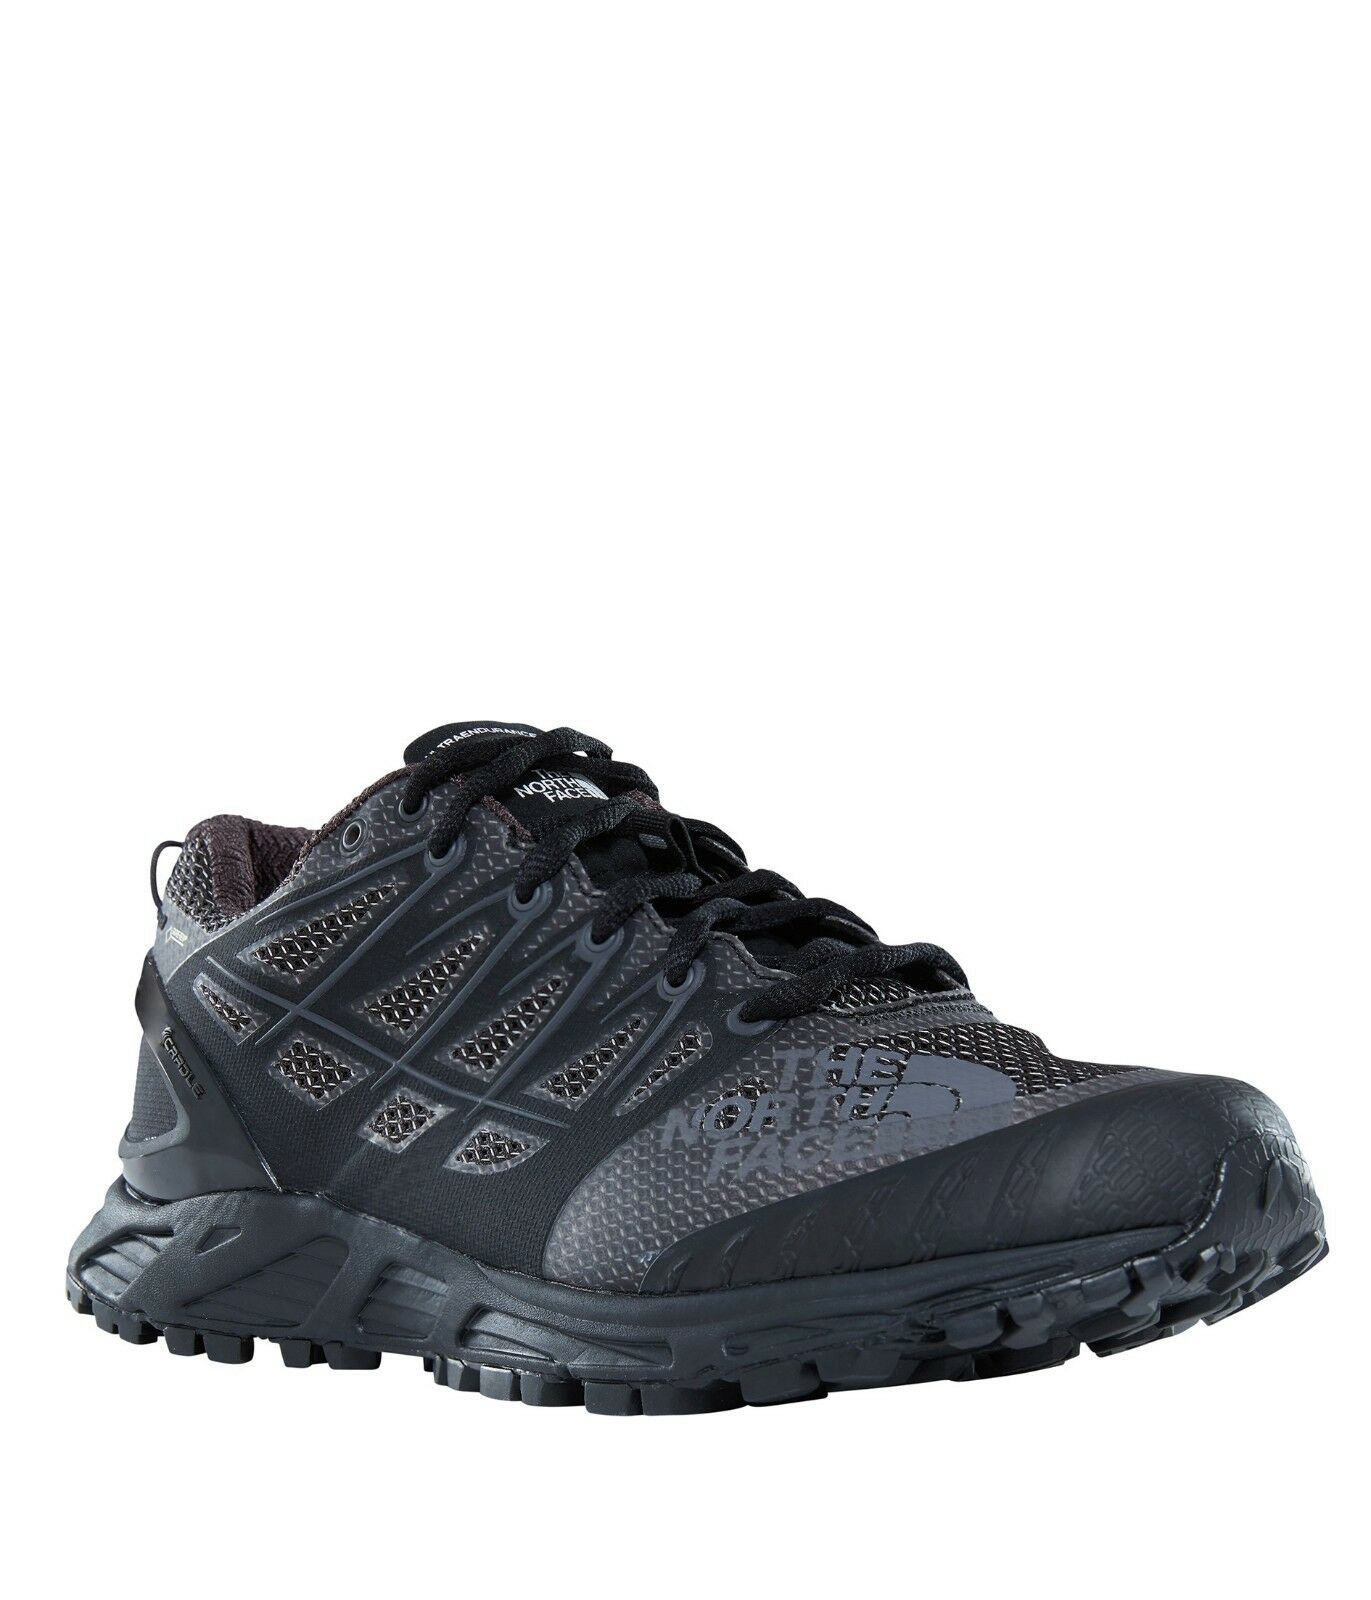 THE NORTH FACE W ULTRA ENDURANCE II  GTX Scarpe Donna TRAIL RUNNING 3FXT 4PD